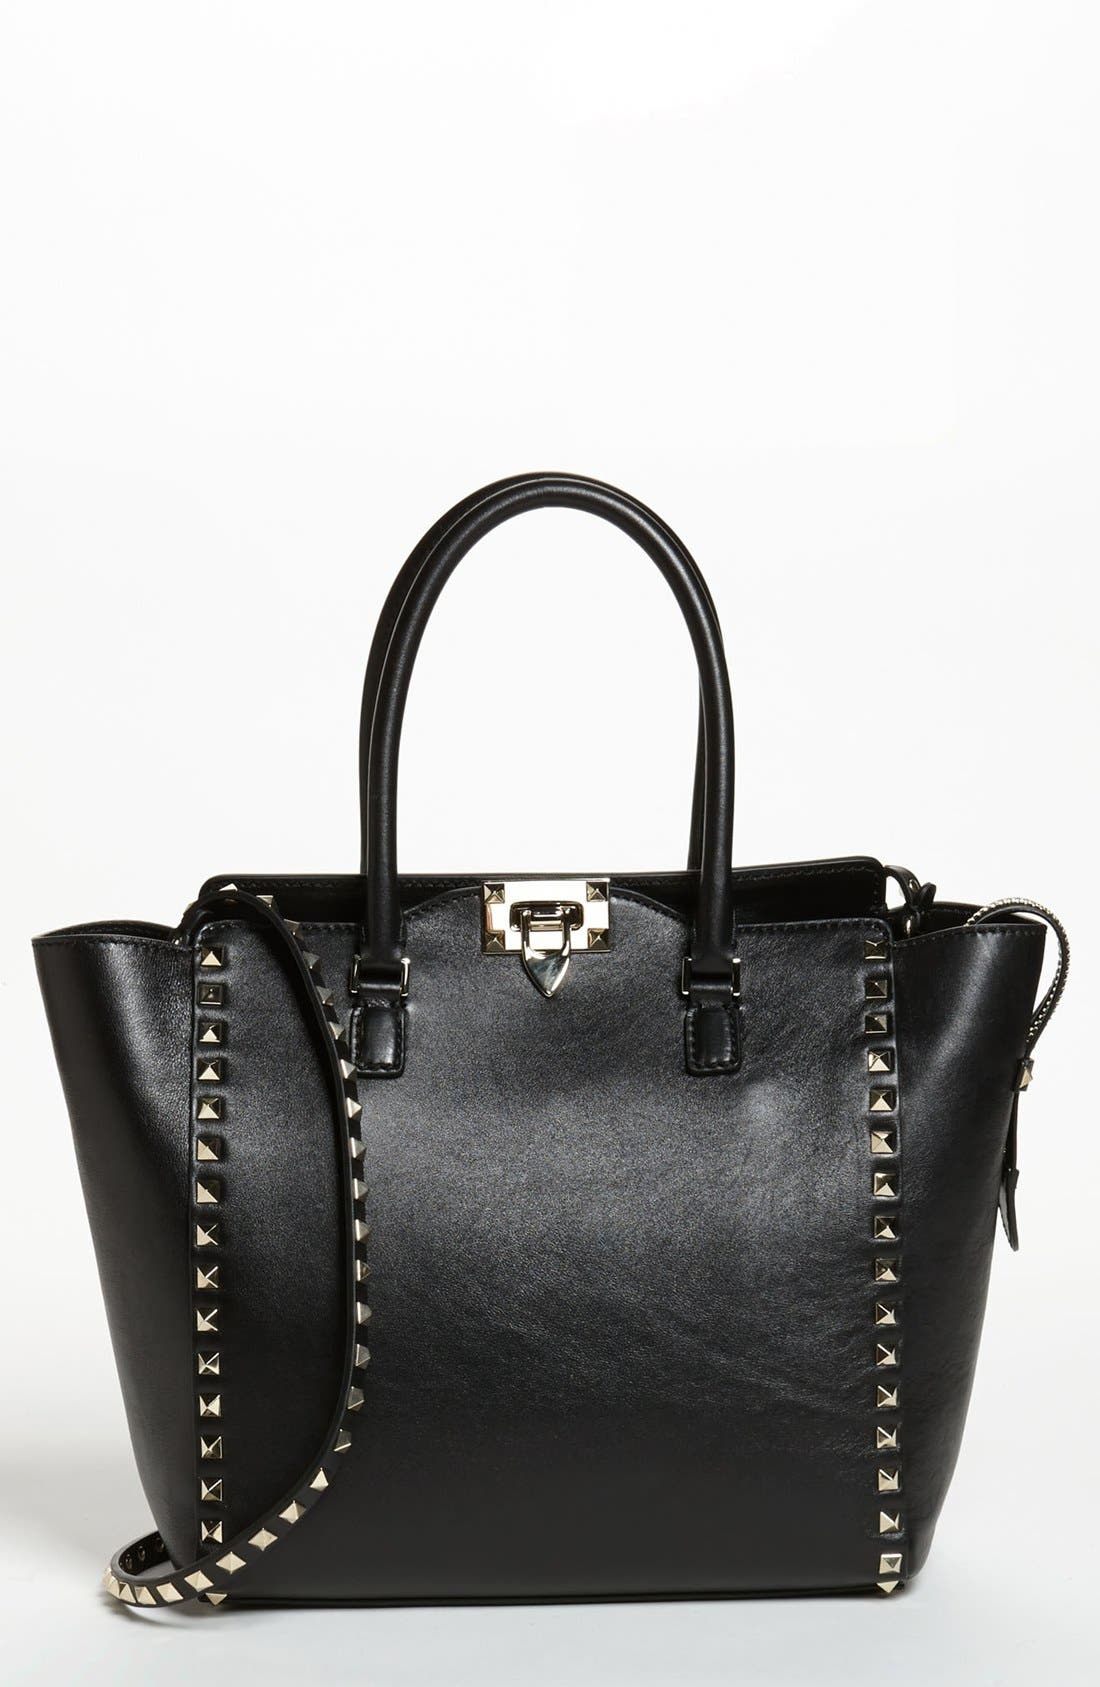 Alternate Image 1 Selected - Valentino 'Rockstud' Double Handle Leather Tote